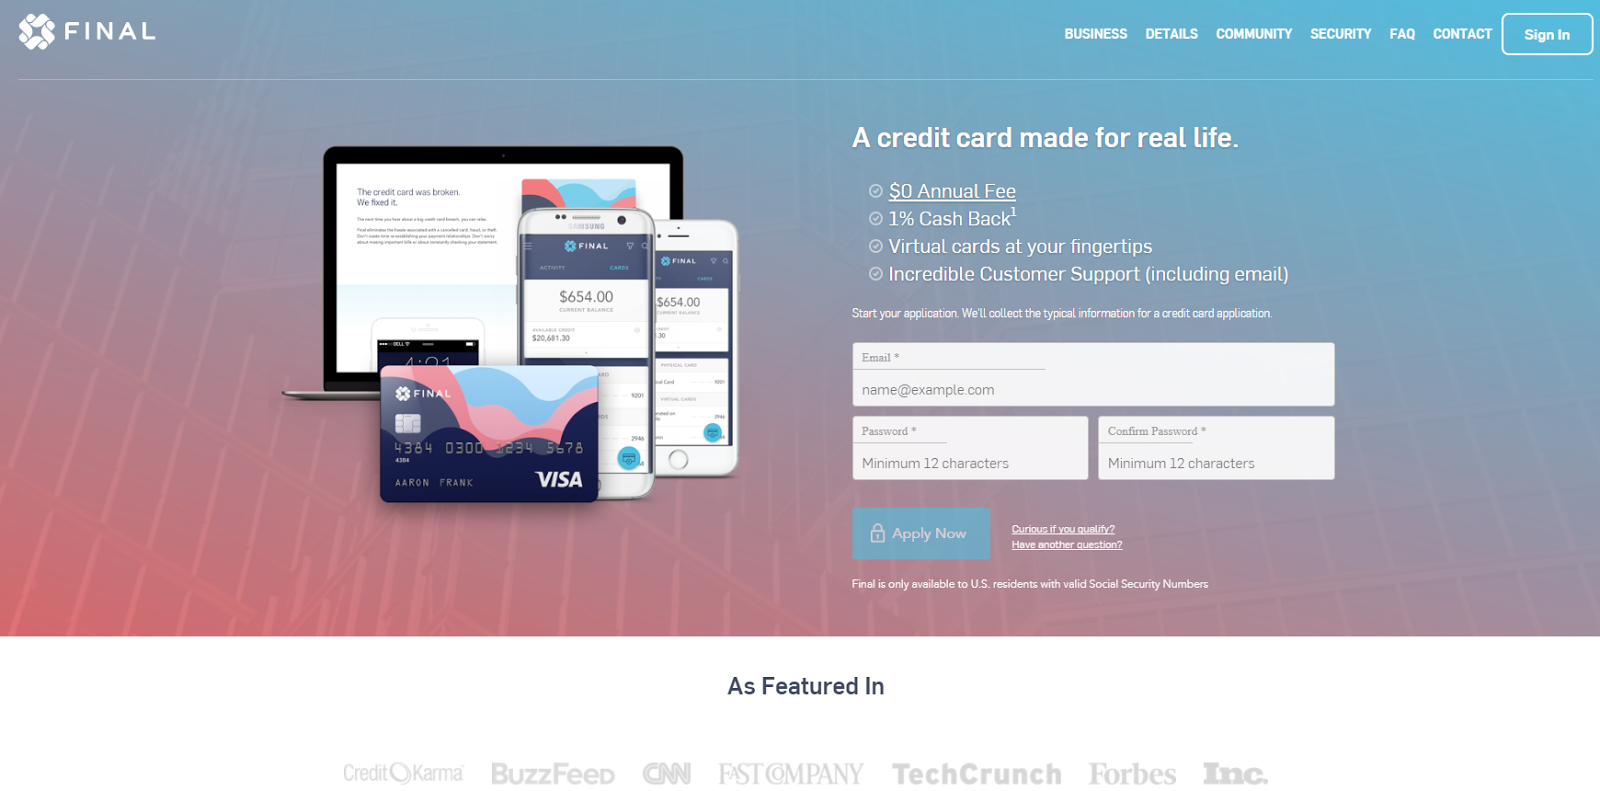 What does the landing page look like